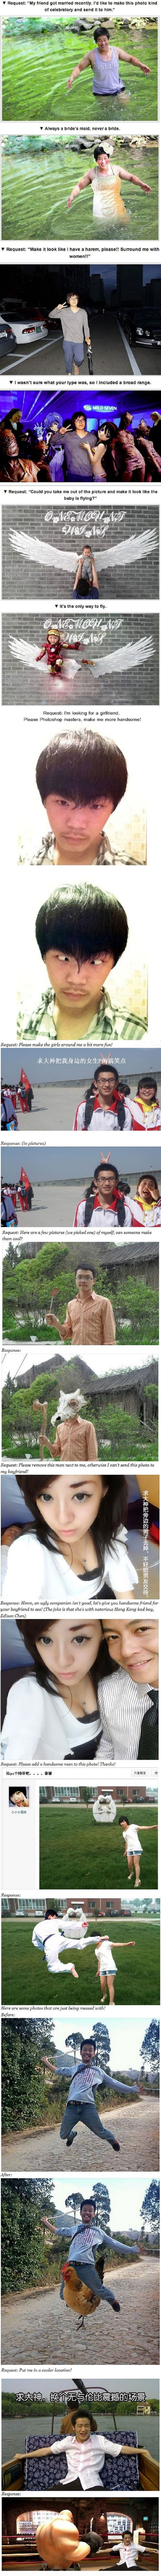 Chinese photoshop trolls